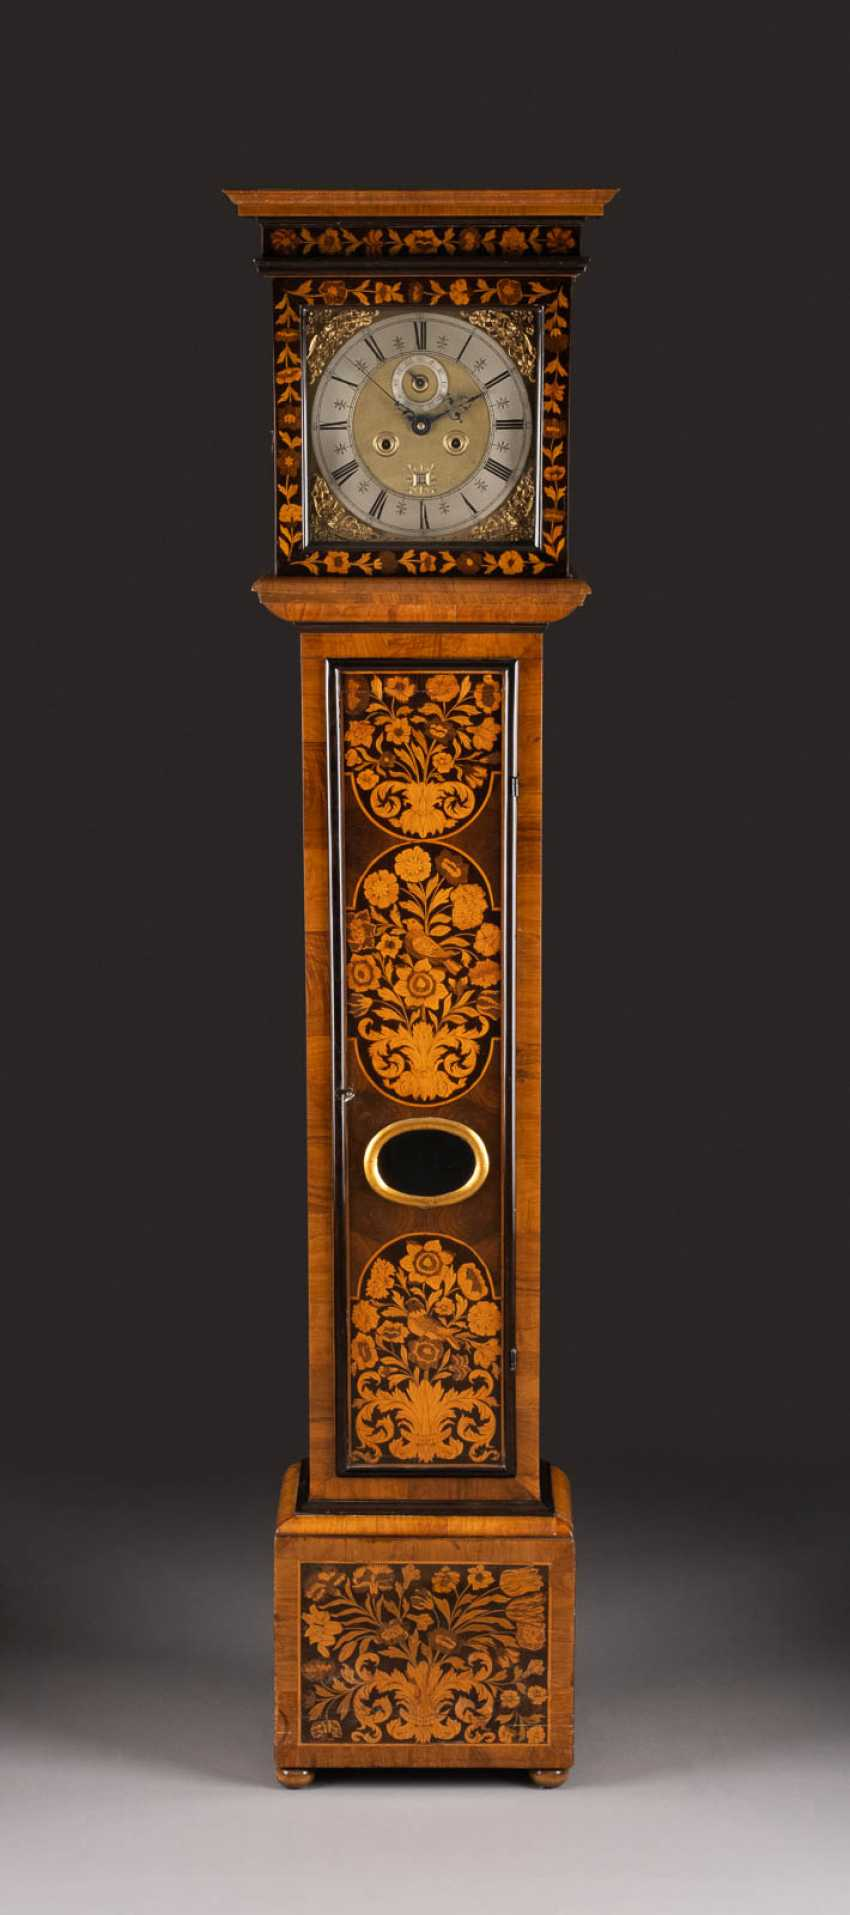 SIGNIFICANT MASTER'S WATCH WITH BIRD AND FLOWER MARQUETERIA - photo 1